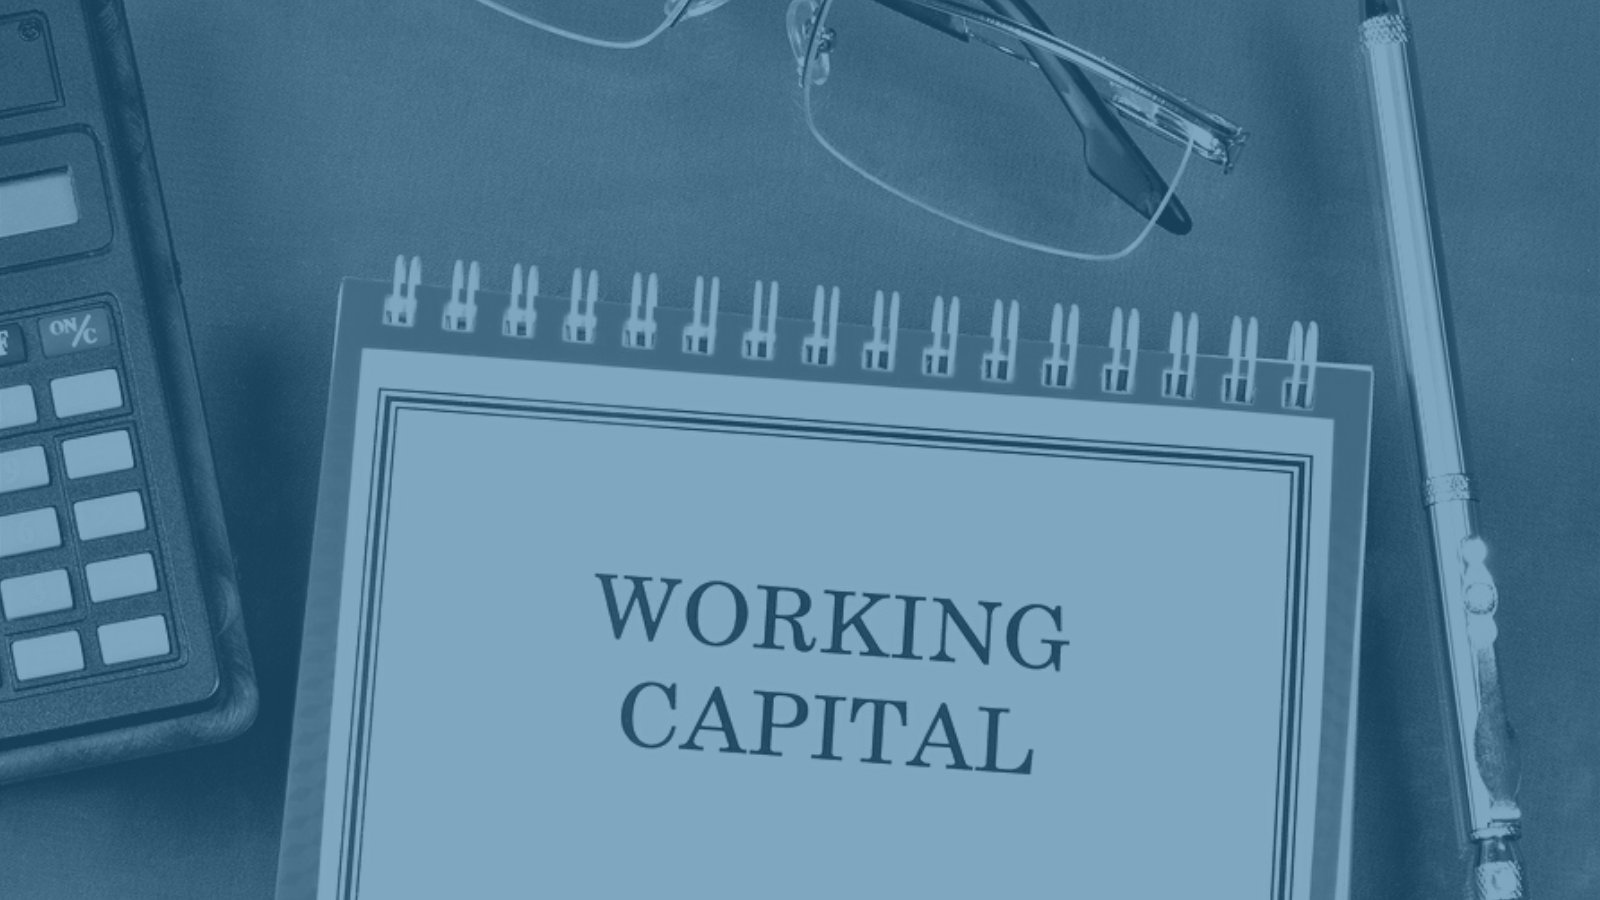 Working Capital Shortfall - Why Consider Alternative Funding